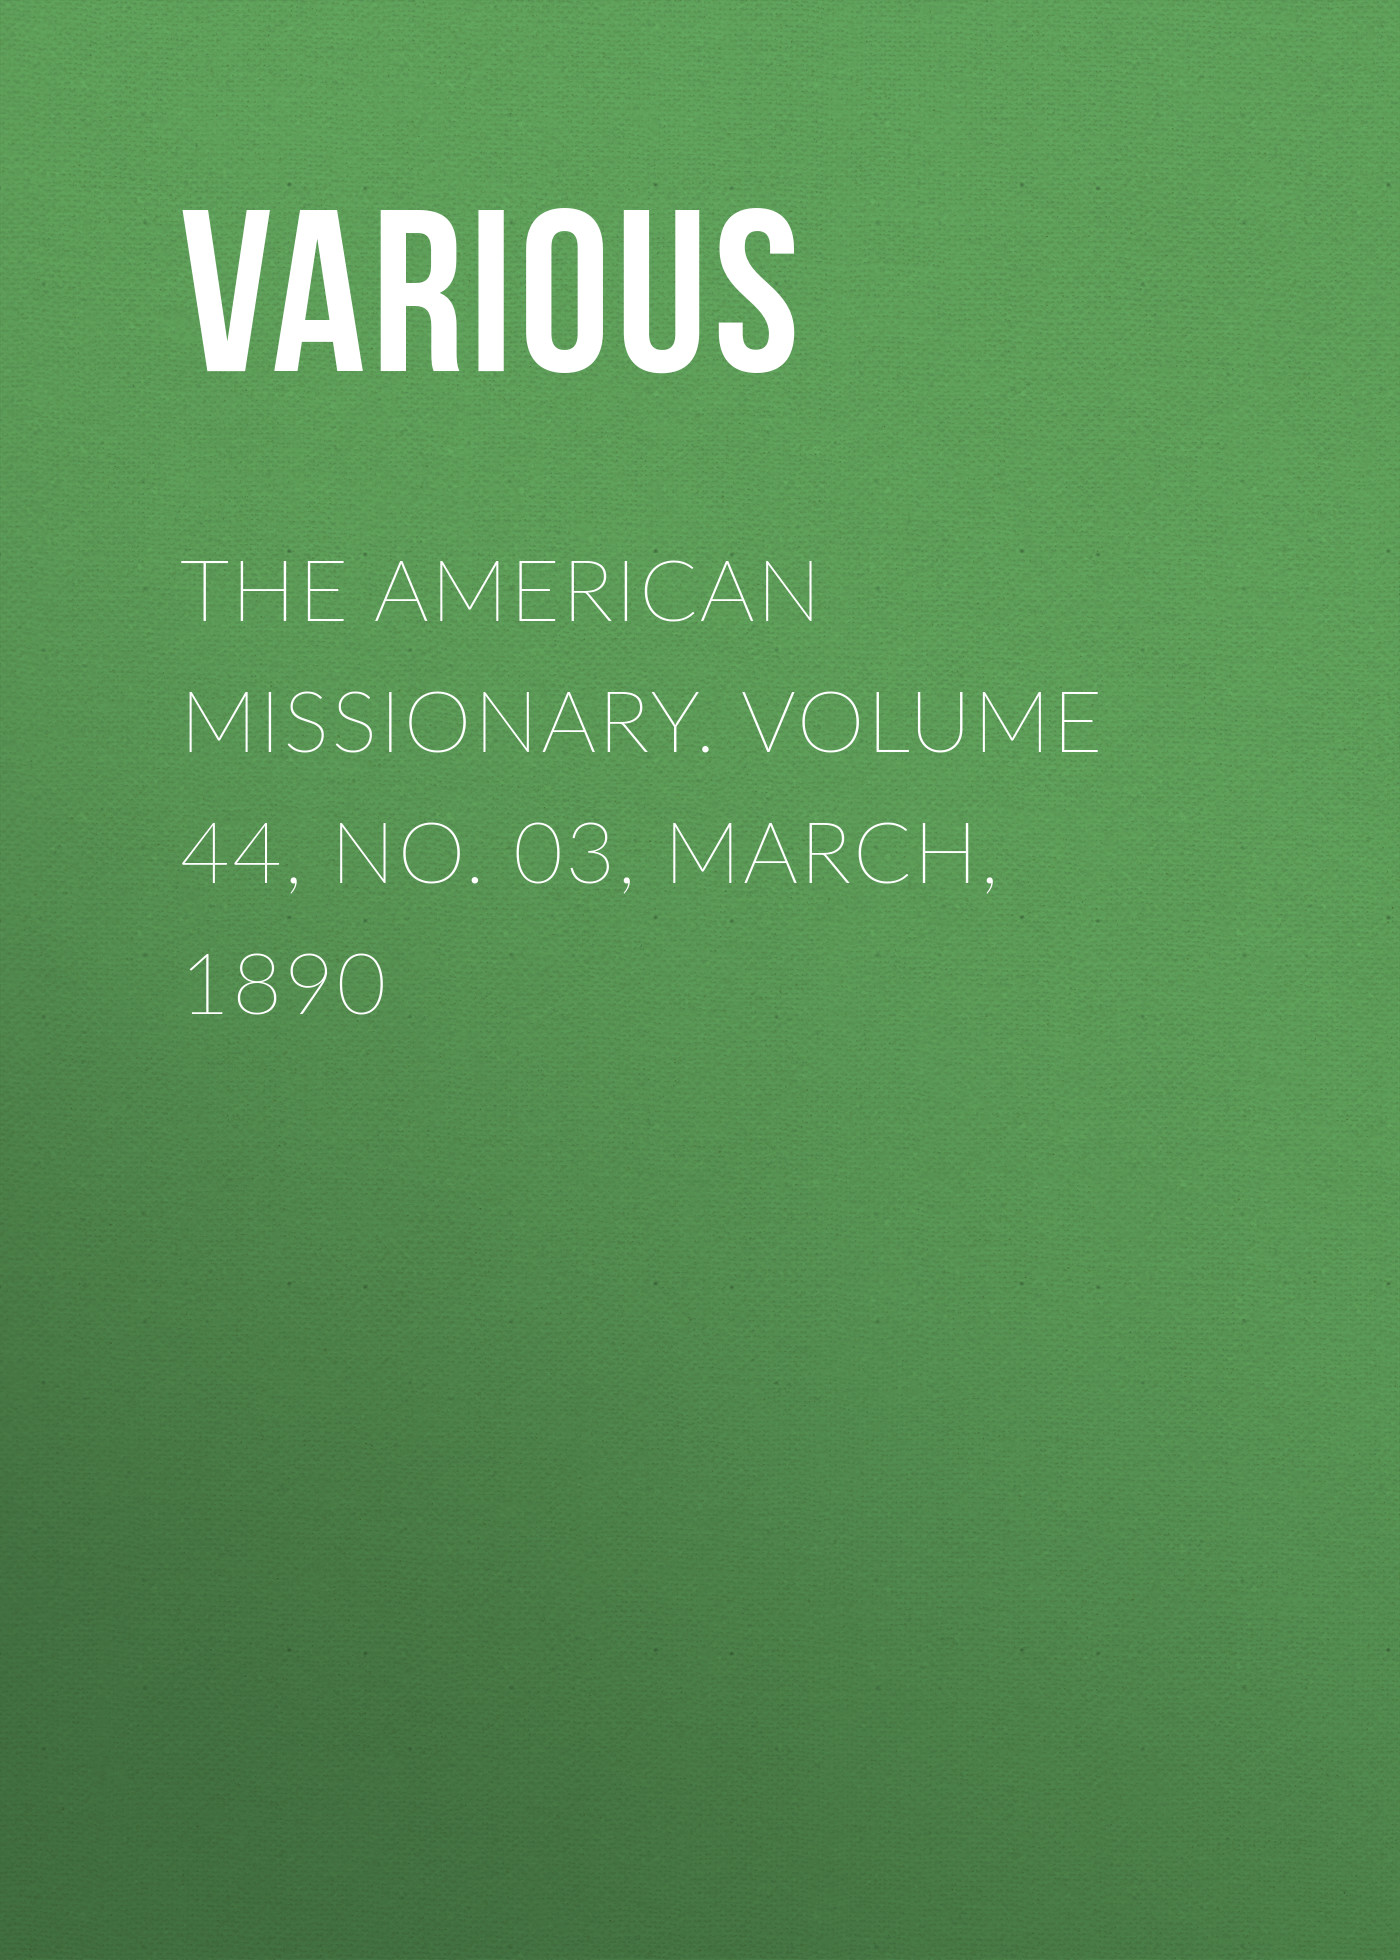 Various The American Missionary. Volume 44, No. 03, March, 1890